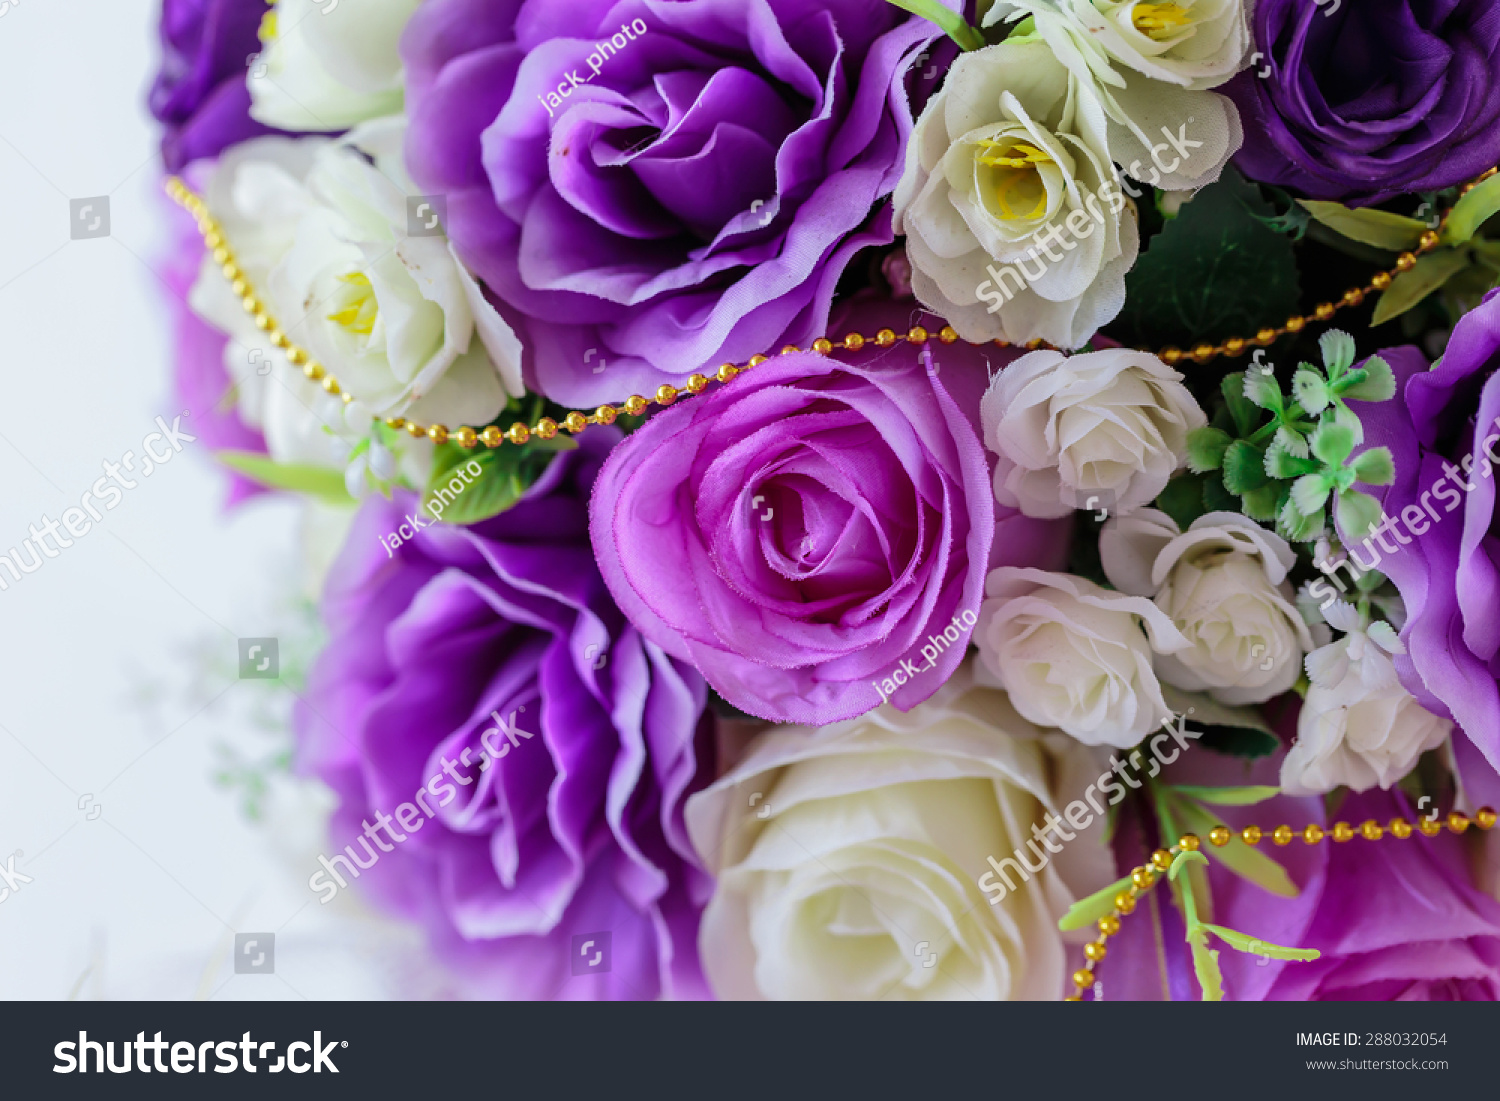 Artificial purple flower little white flowers stock photo edit now artificial purple flower and little white flowers are decorated interior izmirmasajfo